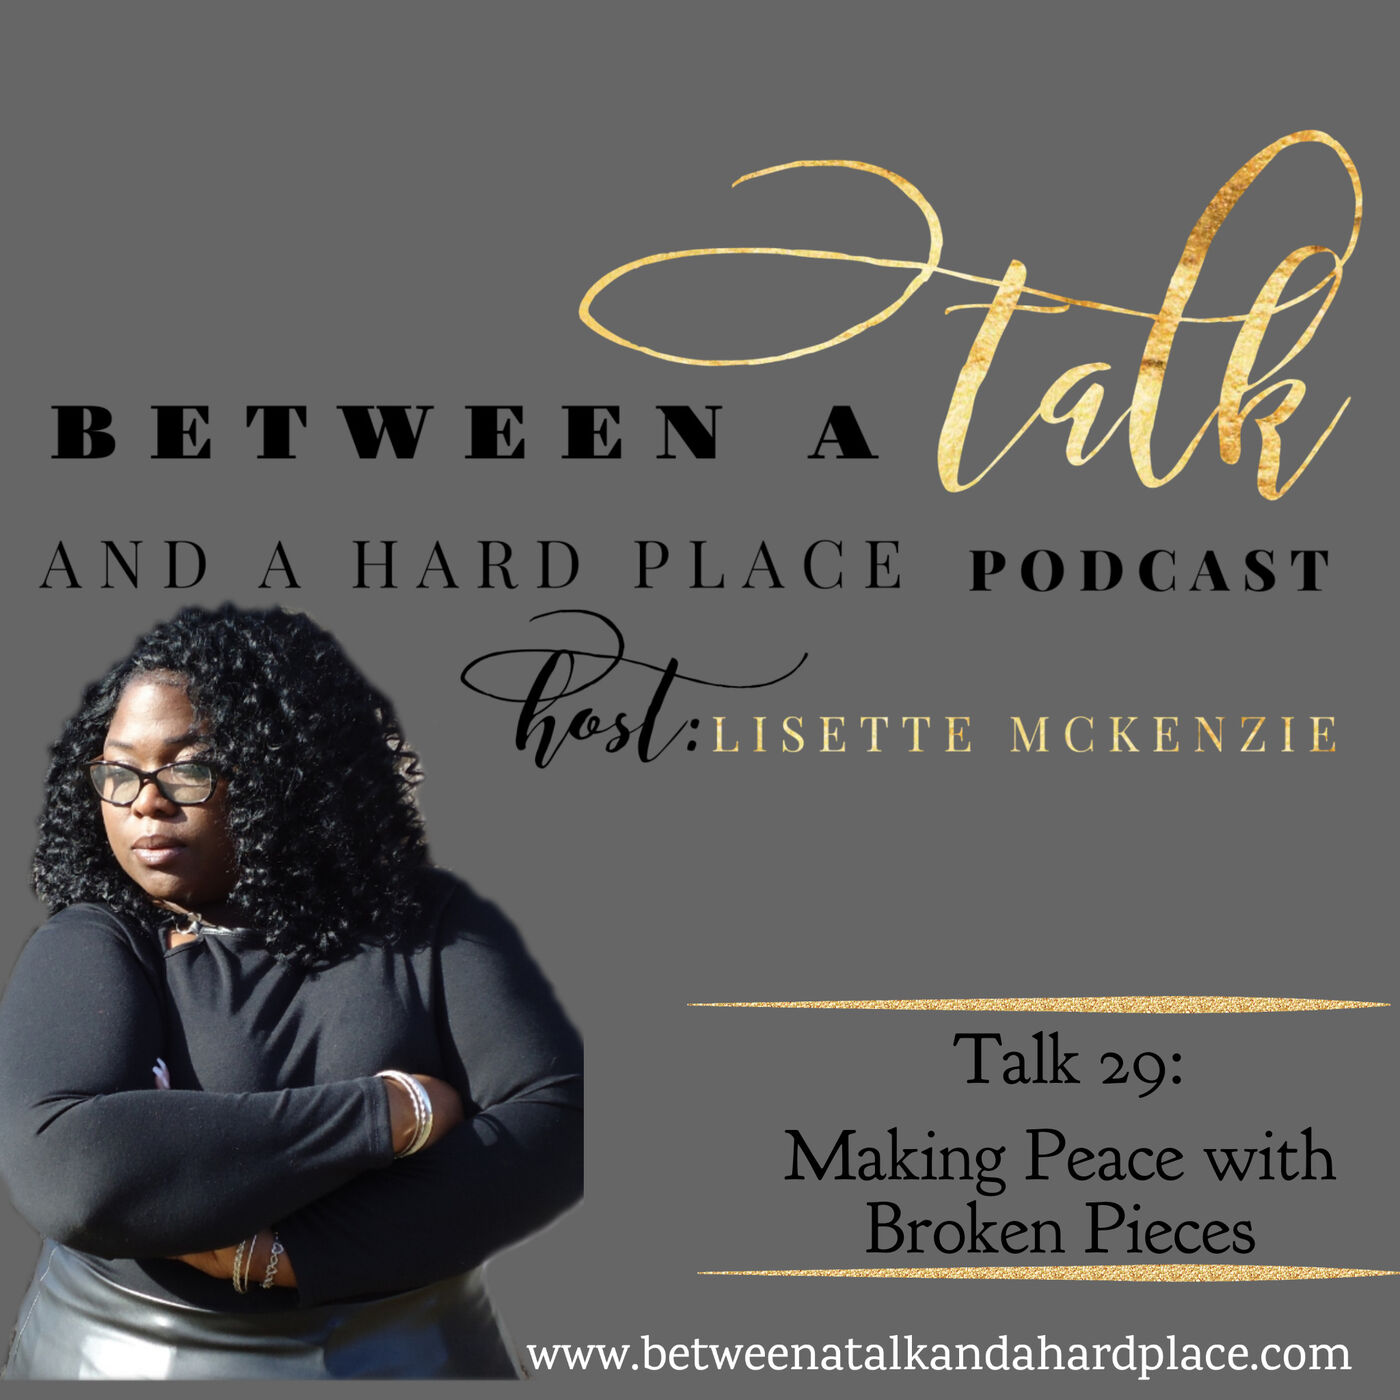 Talk 29: Making Peace With Broken Pieces